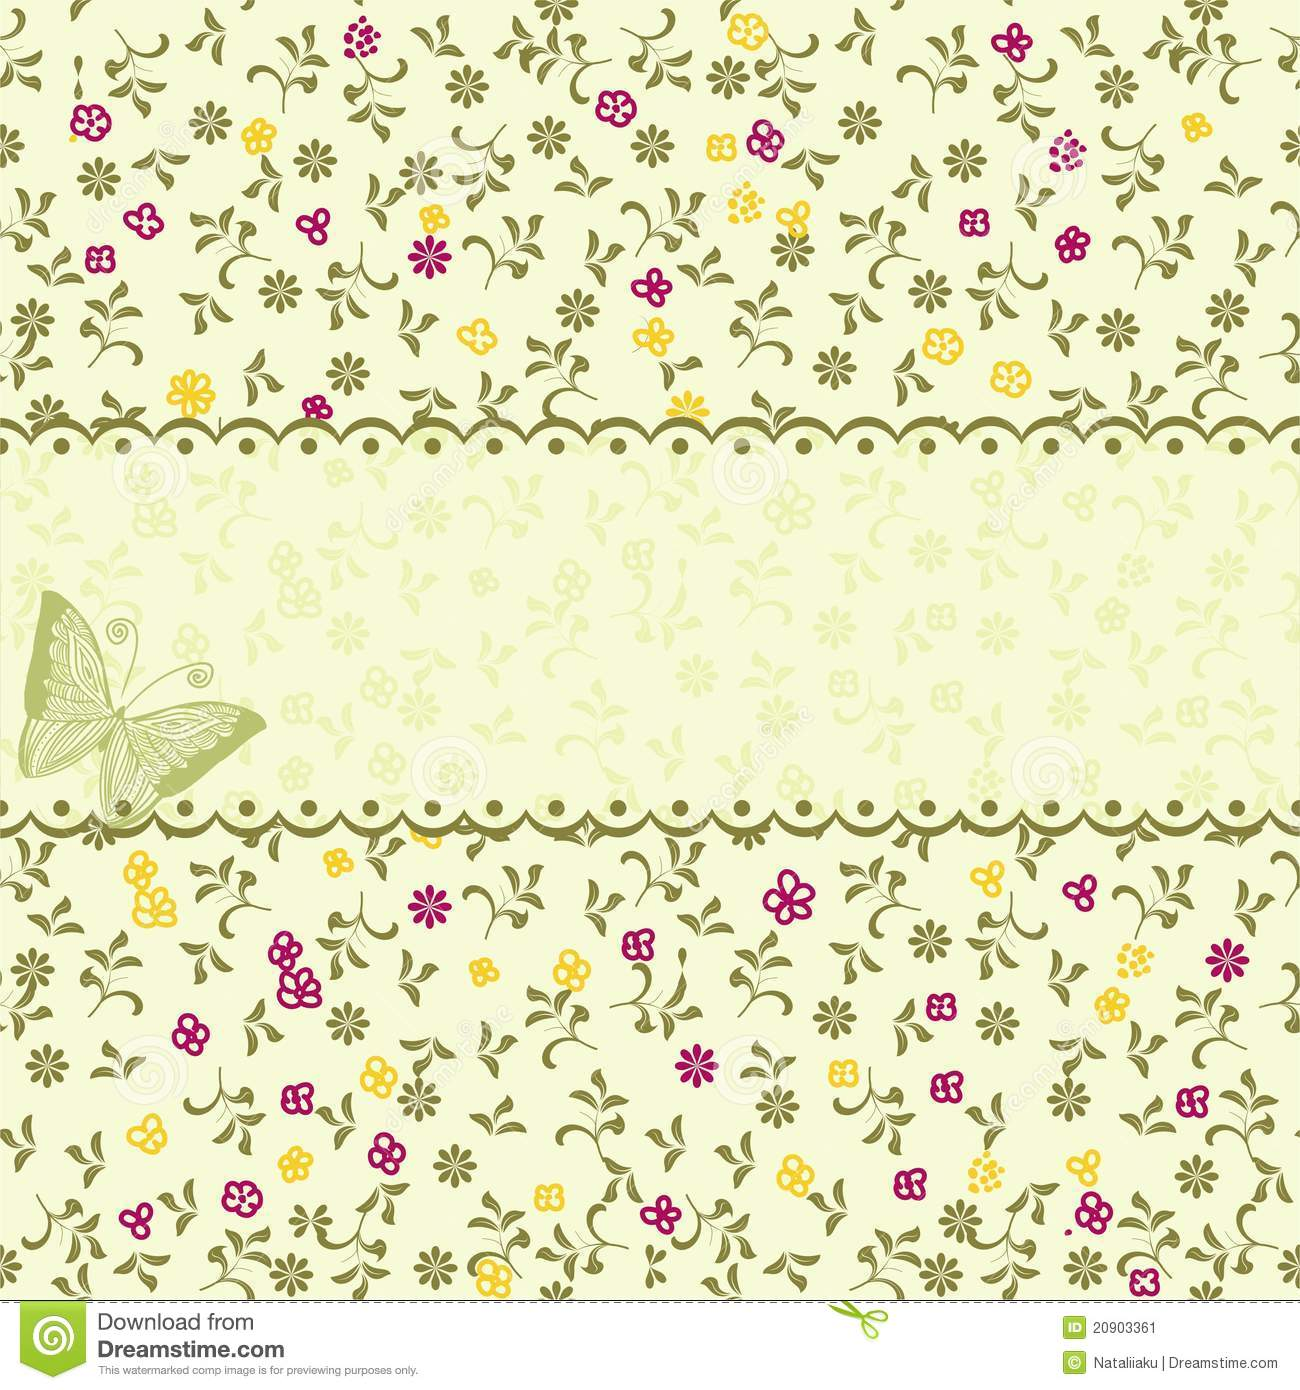 Vintage Floral Seamless Pattern In Vector Stock Vector ...